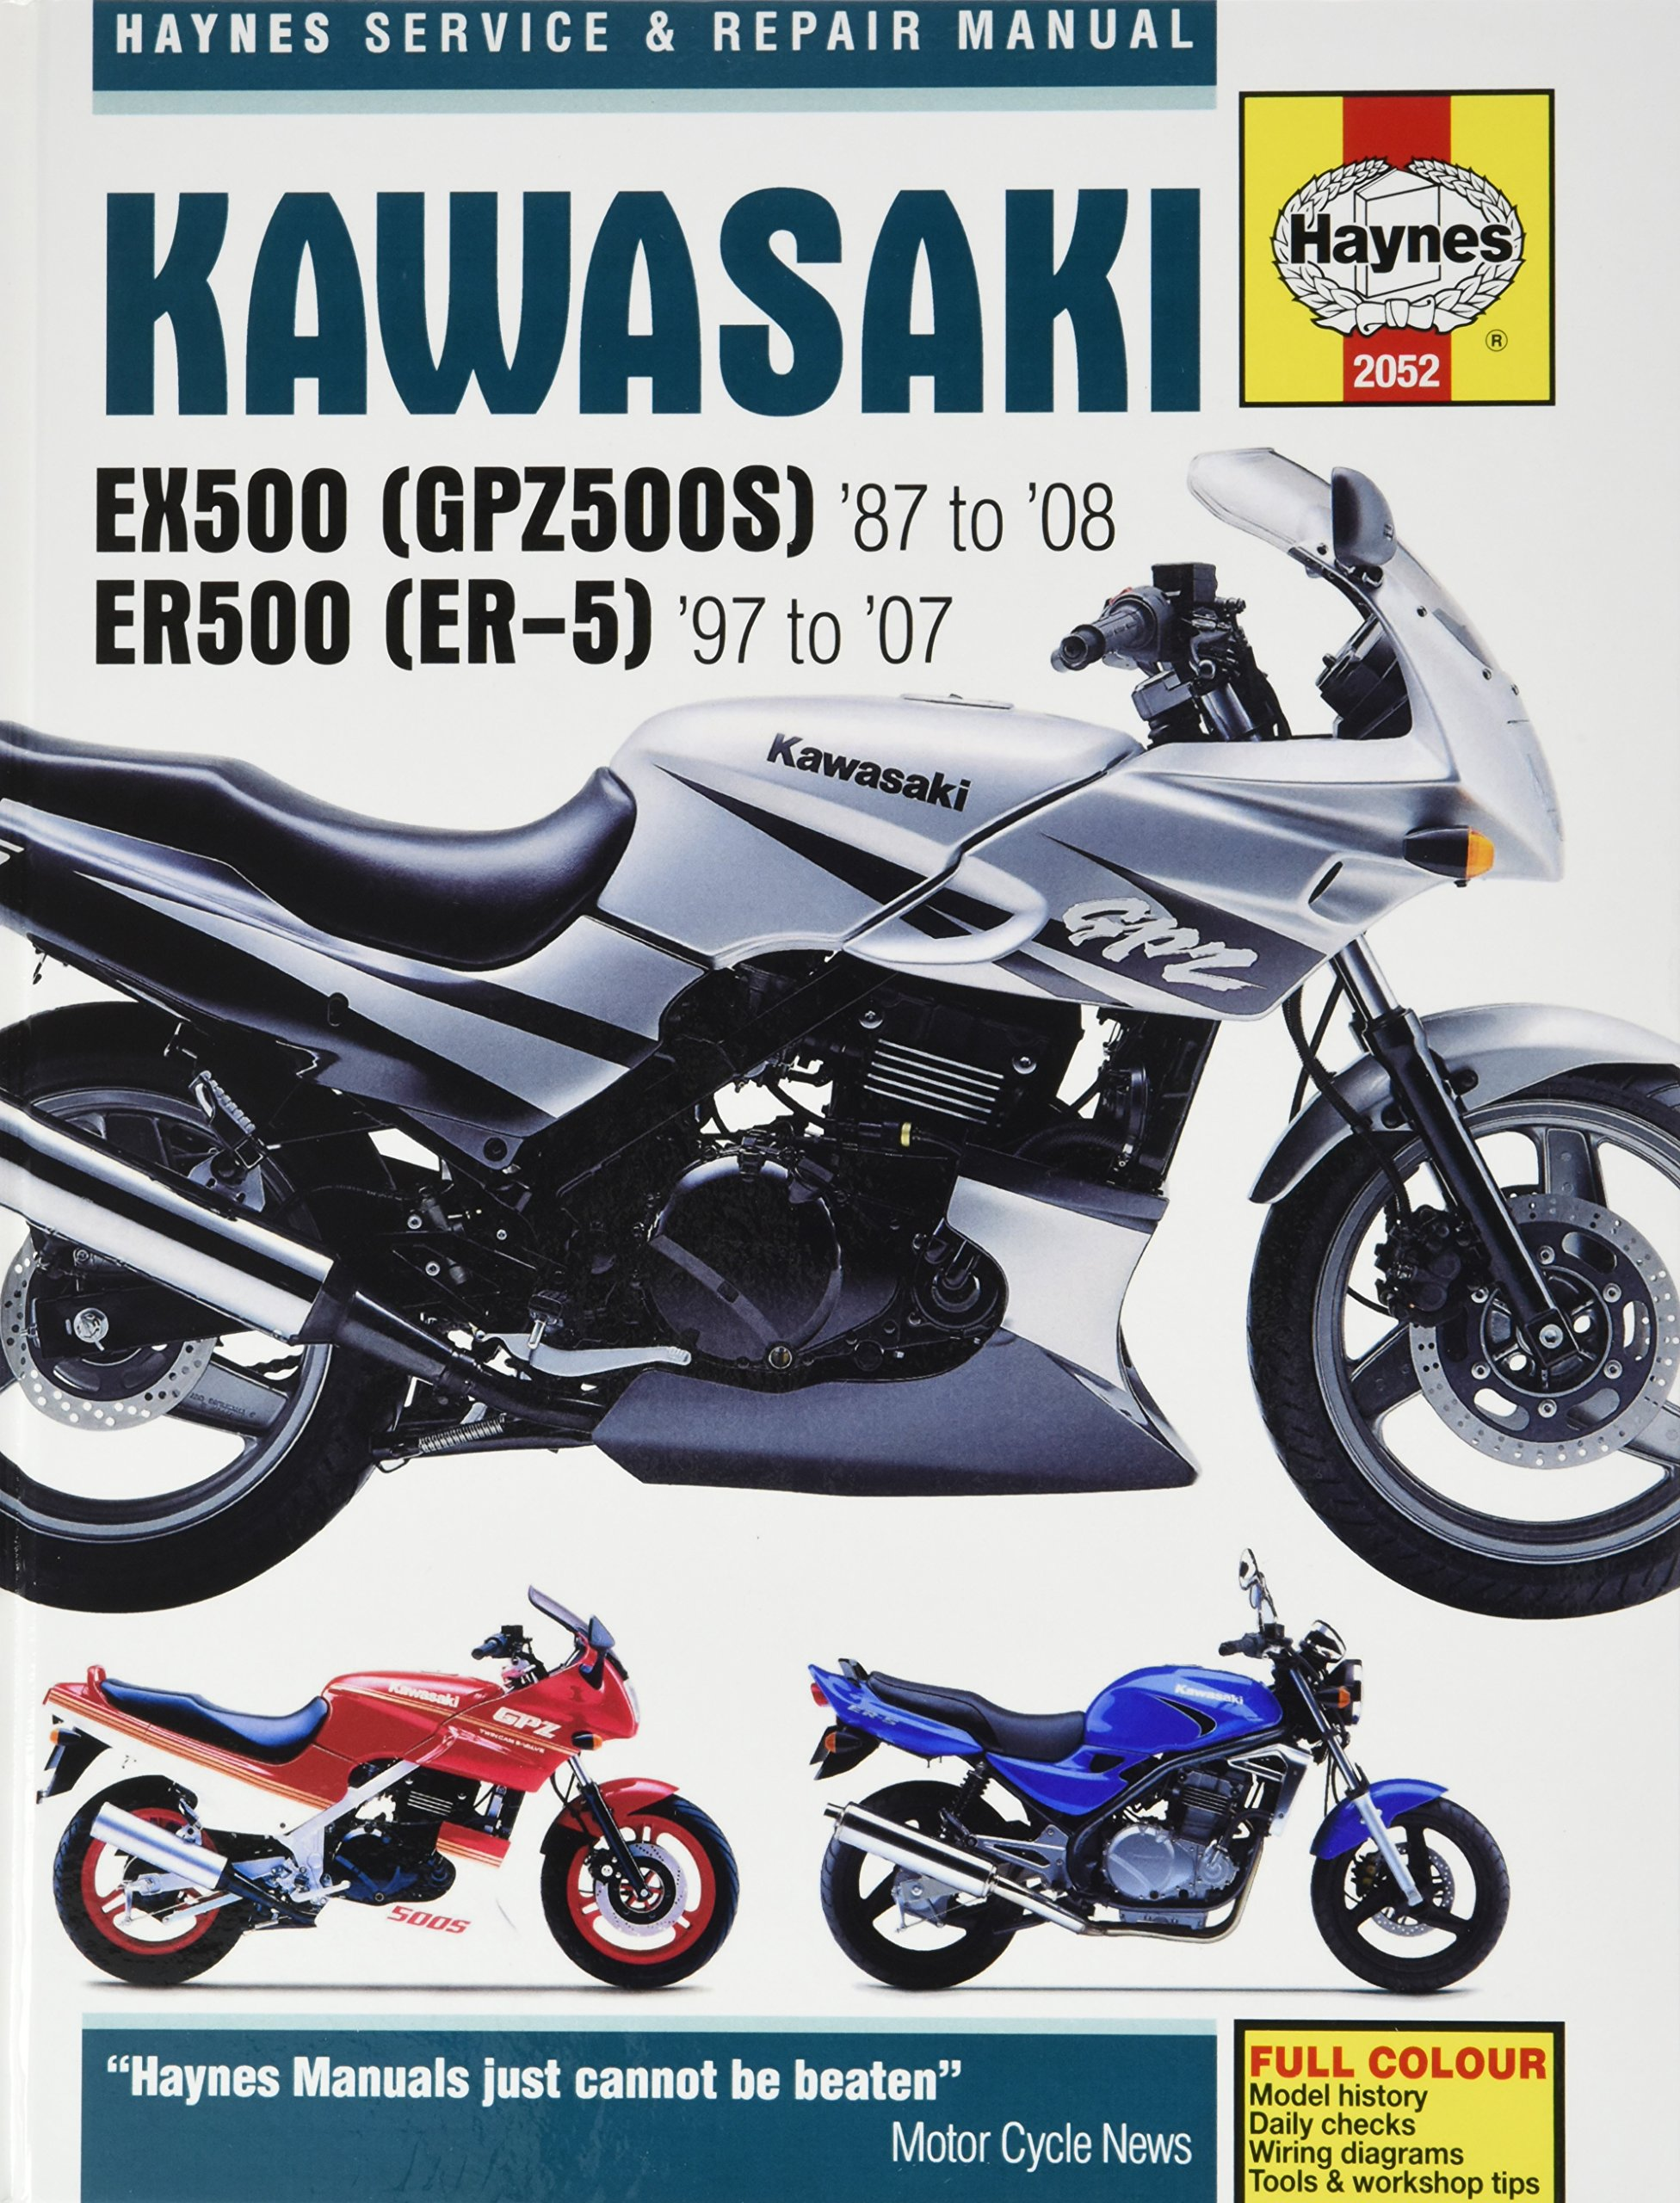 Kawasaki EX500 (GPZ500S) and ER500 (ER-5) Service and Repair Manual: EX500  1987 to 2008, ER500 1997 to 2007 (Haynes Service and Repair Manuals): ...